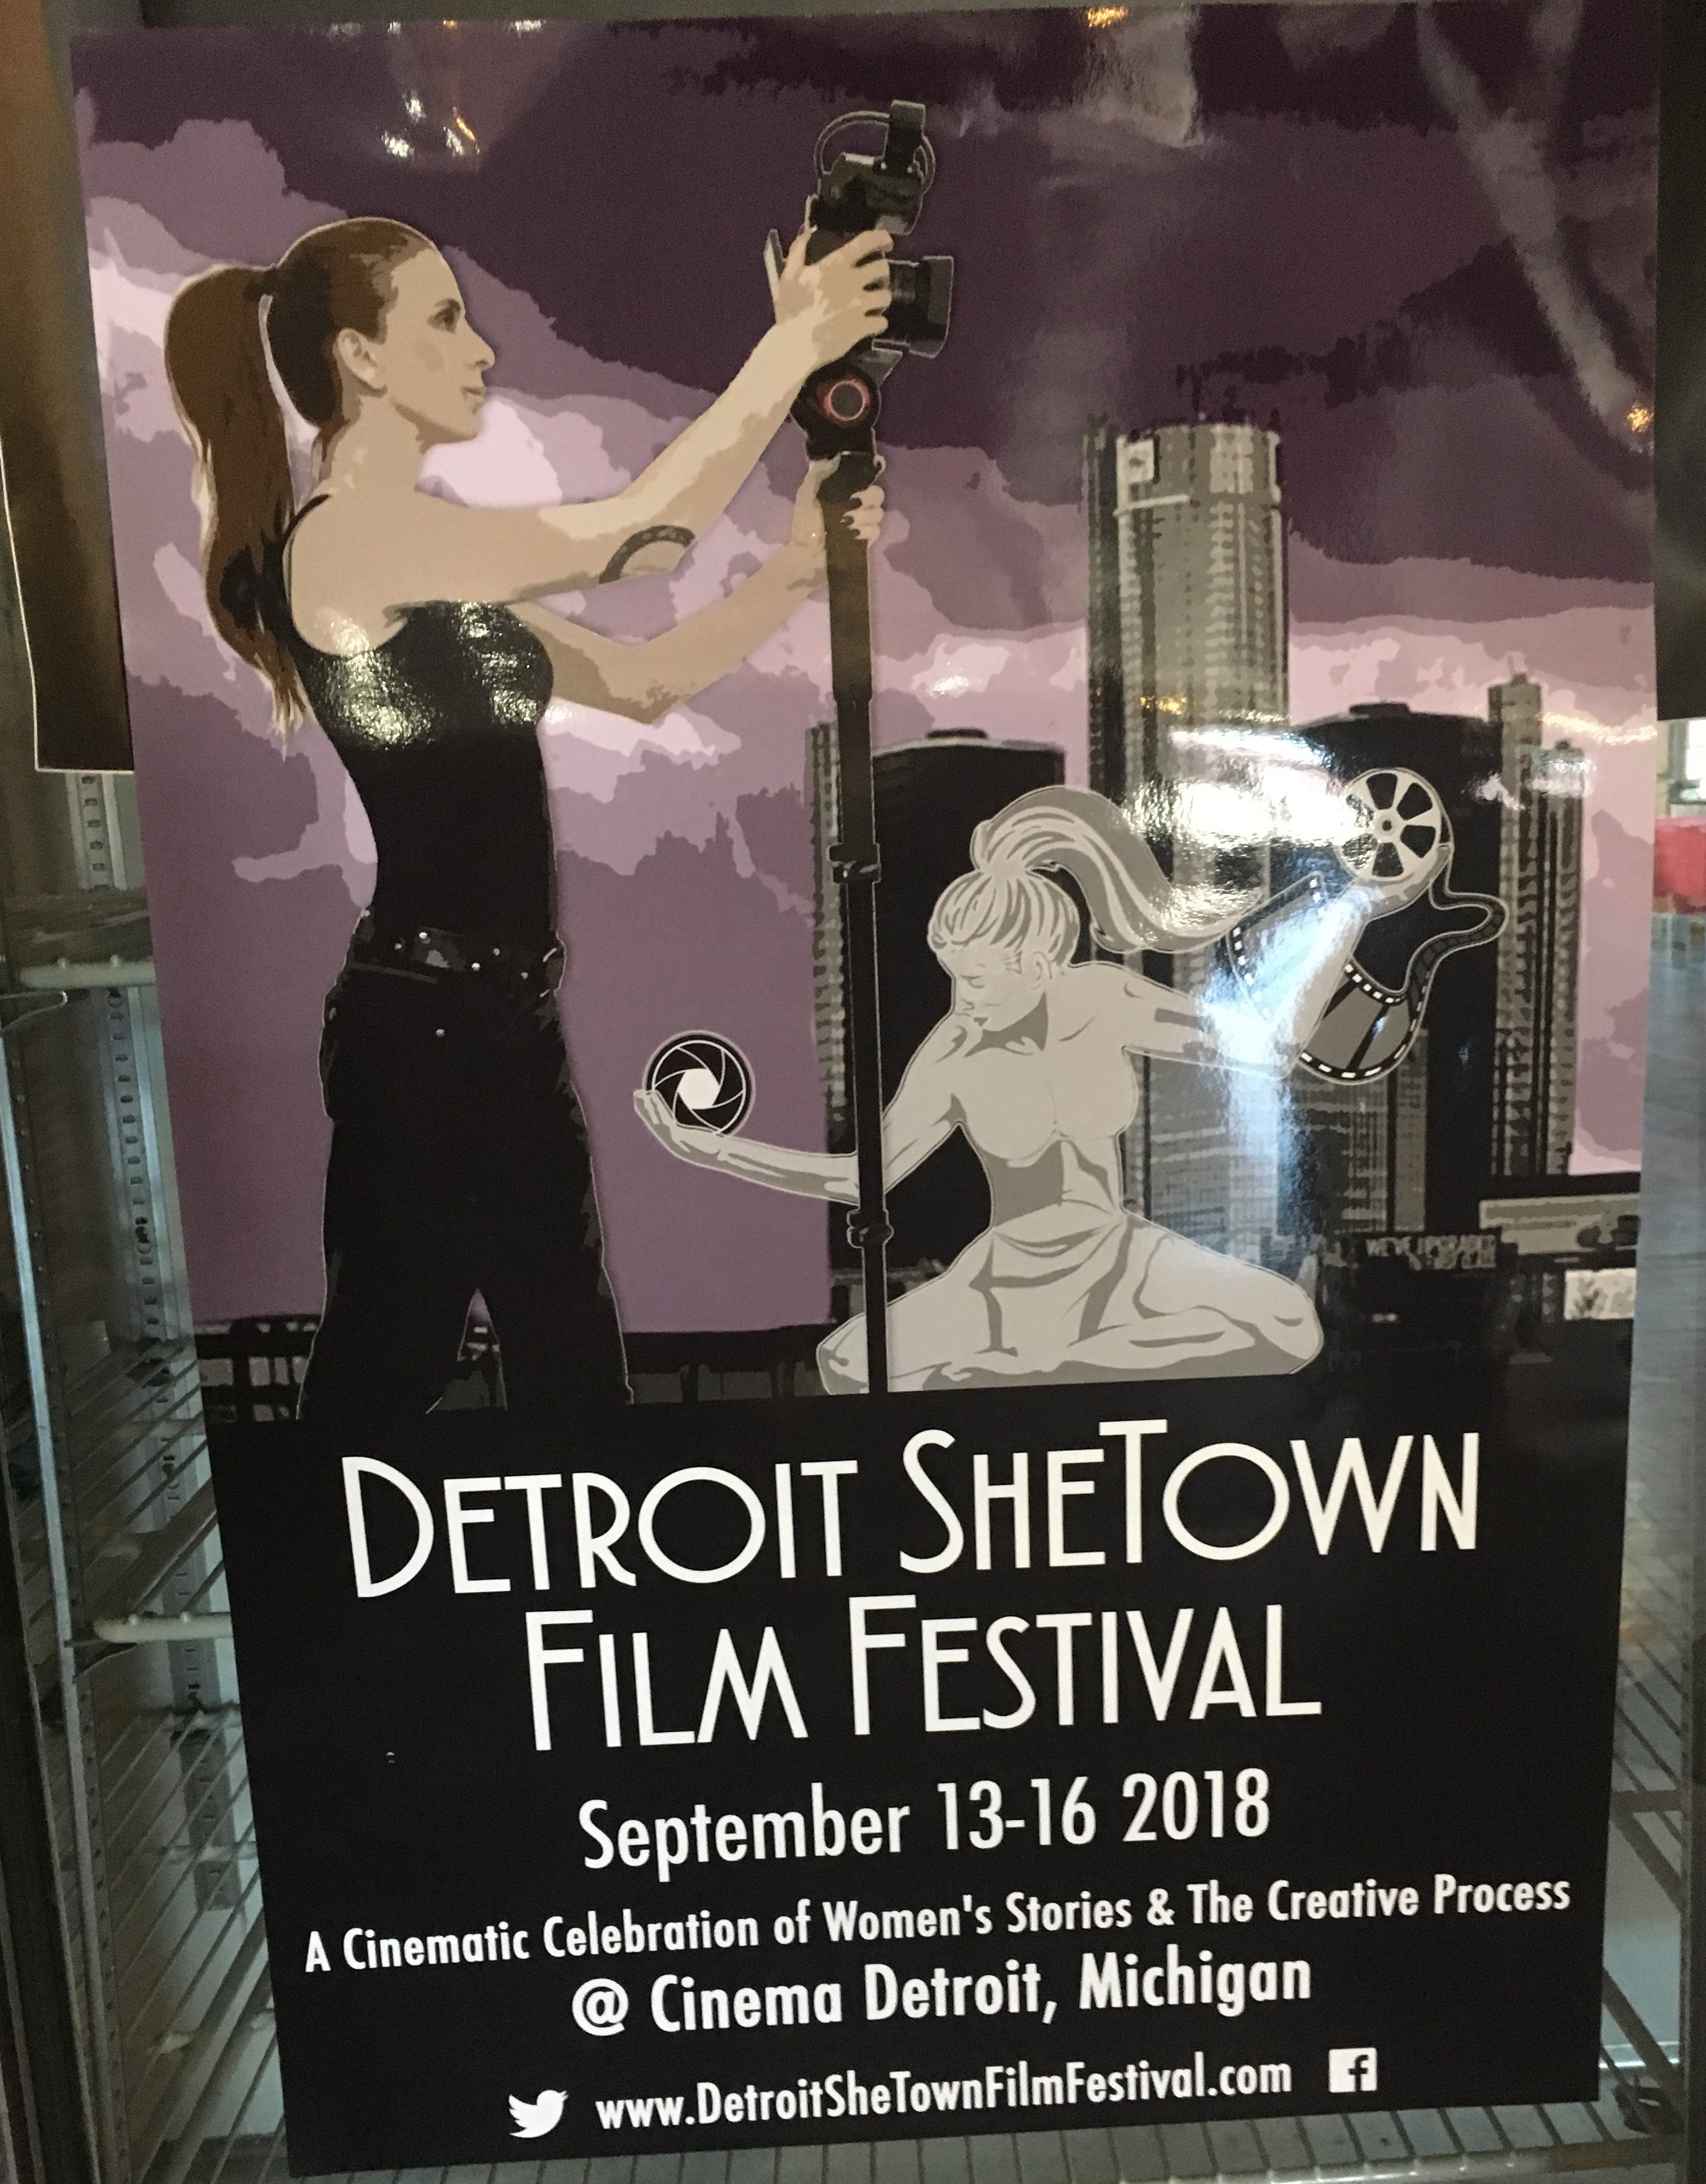 Poster for She Town Film Festival at Cinema Detroit Sept. 13-16, 2018